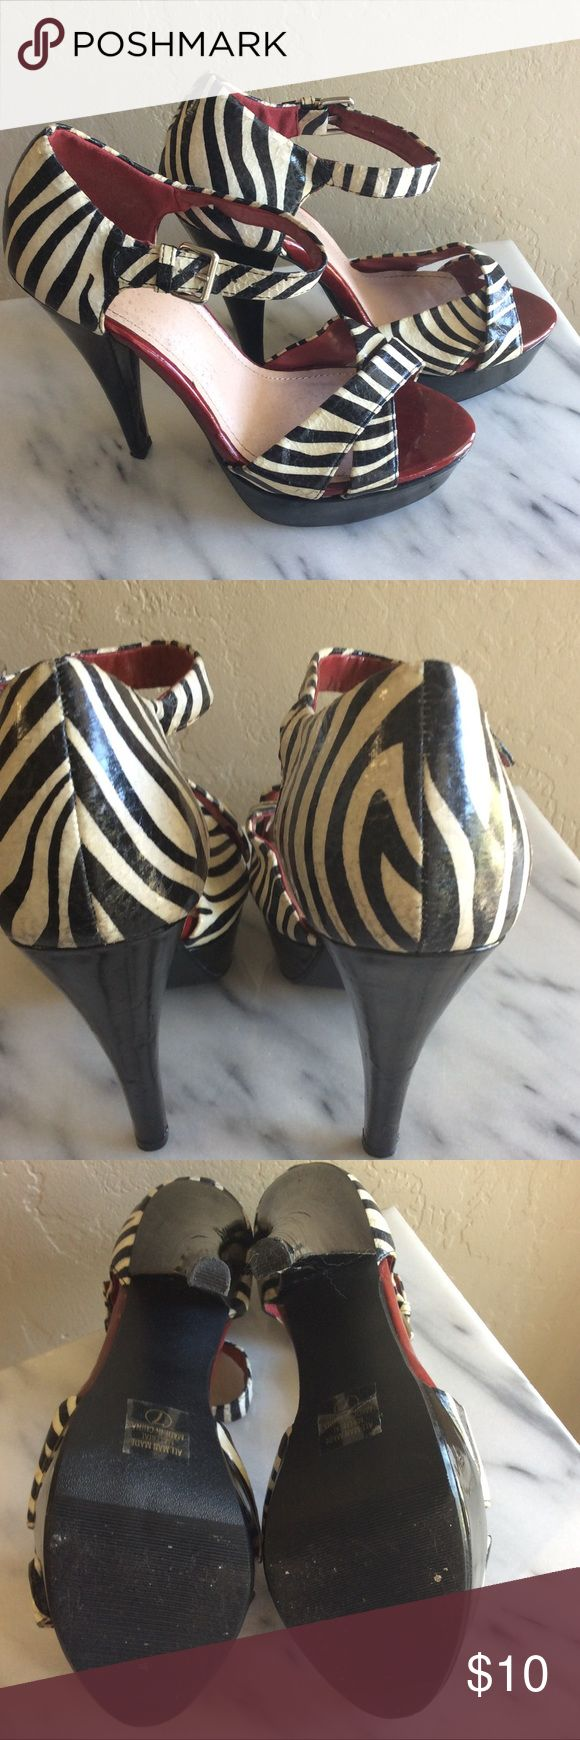 Zebra Heels Heart in a D Zebra shoes in good preowned condition heart in a d Shoes Heels